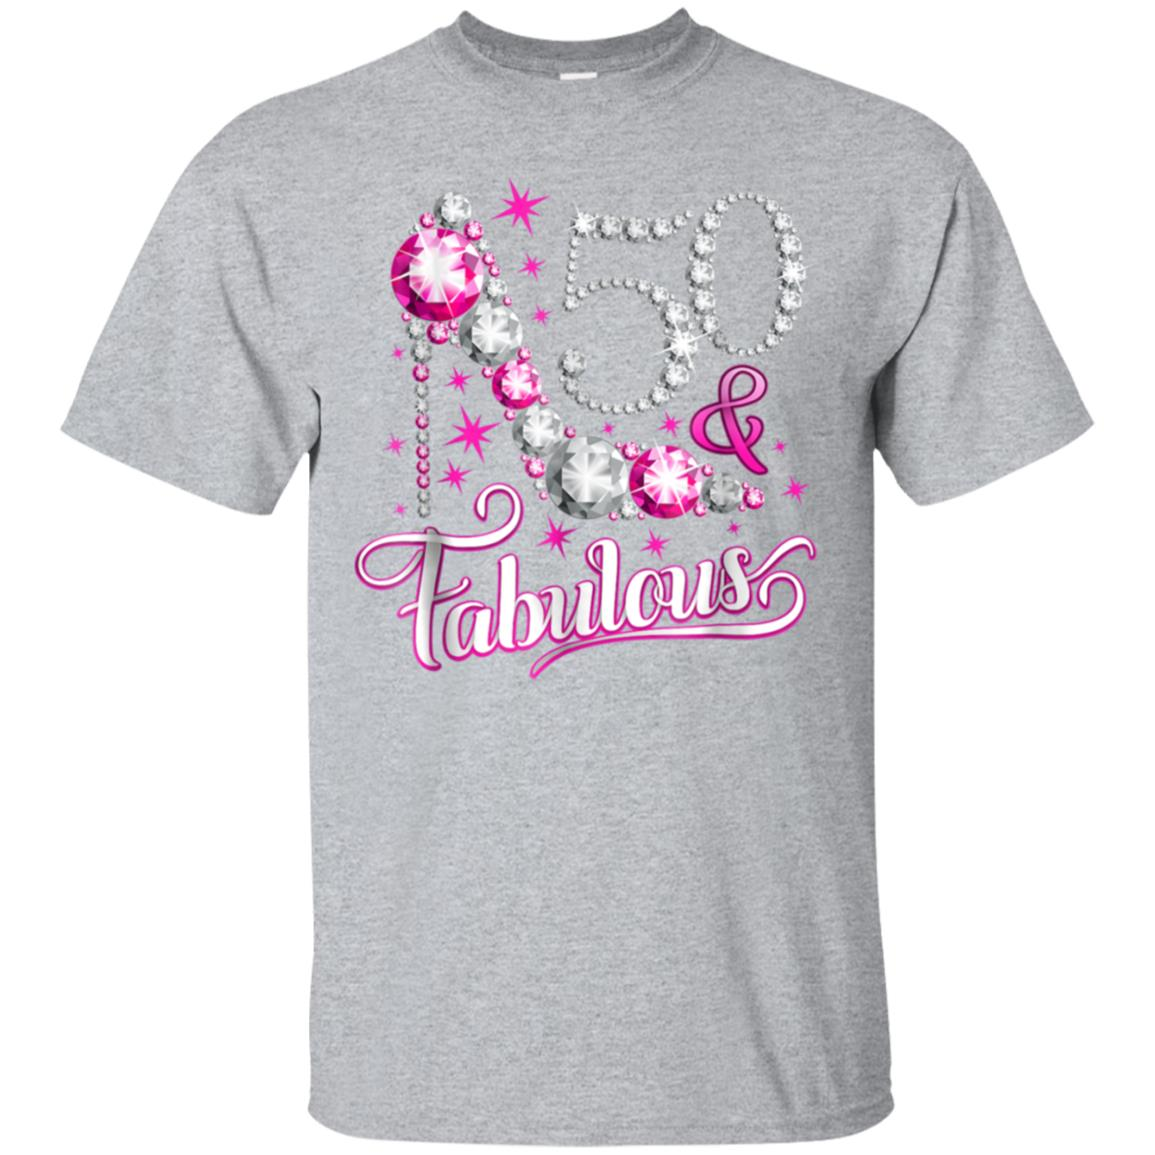 50 Fabulous T Shirt 50th Birthday For Women